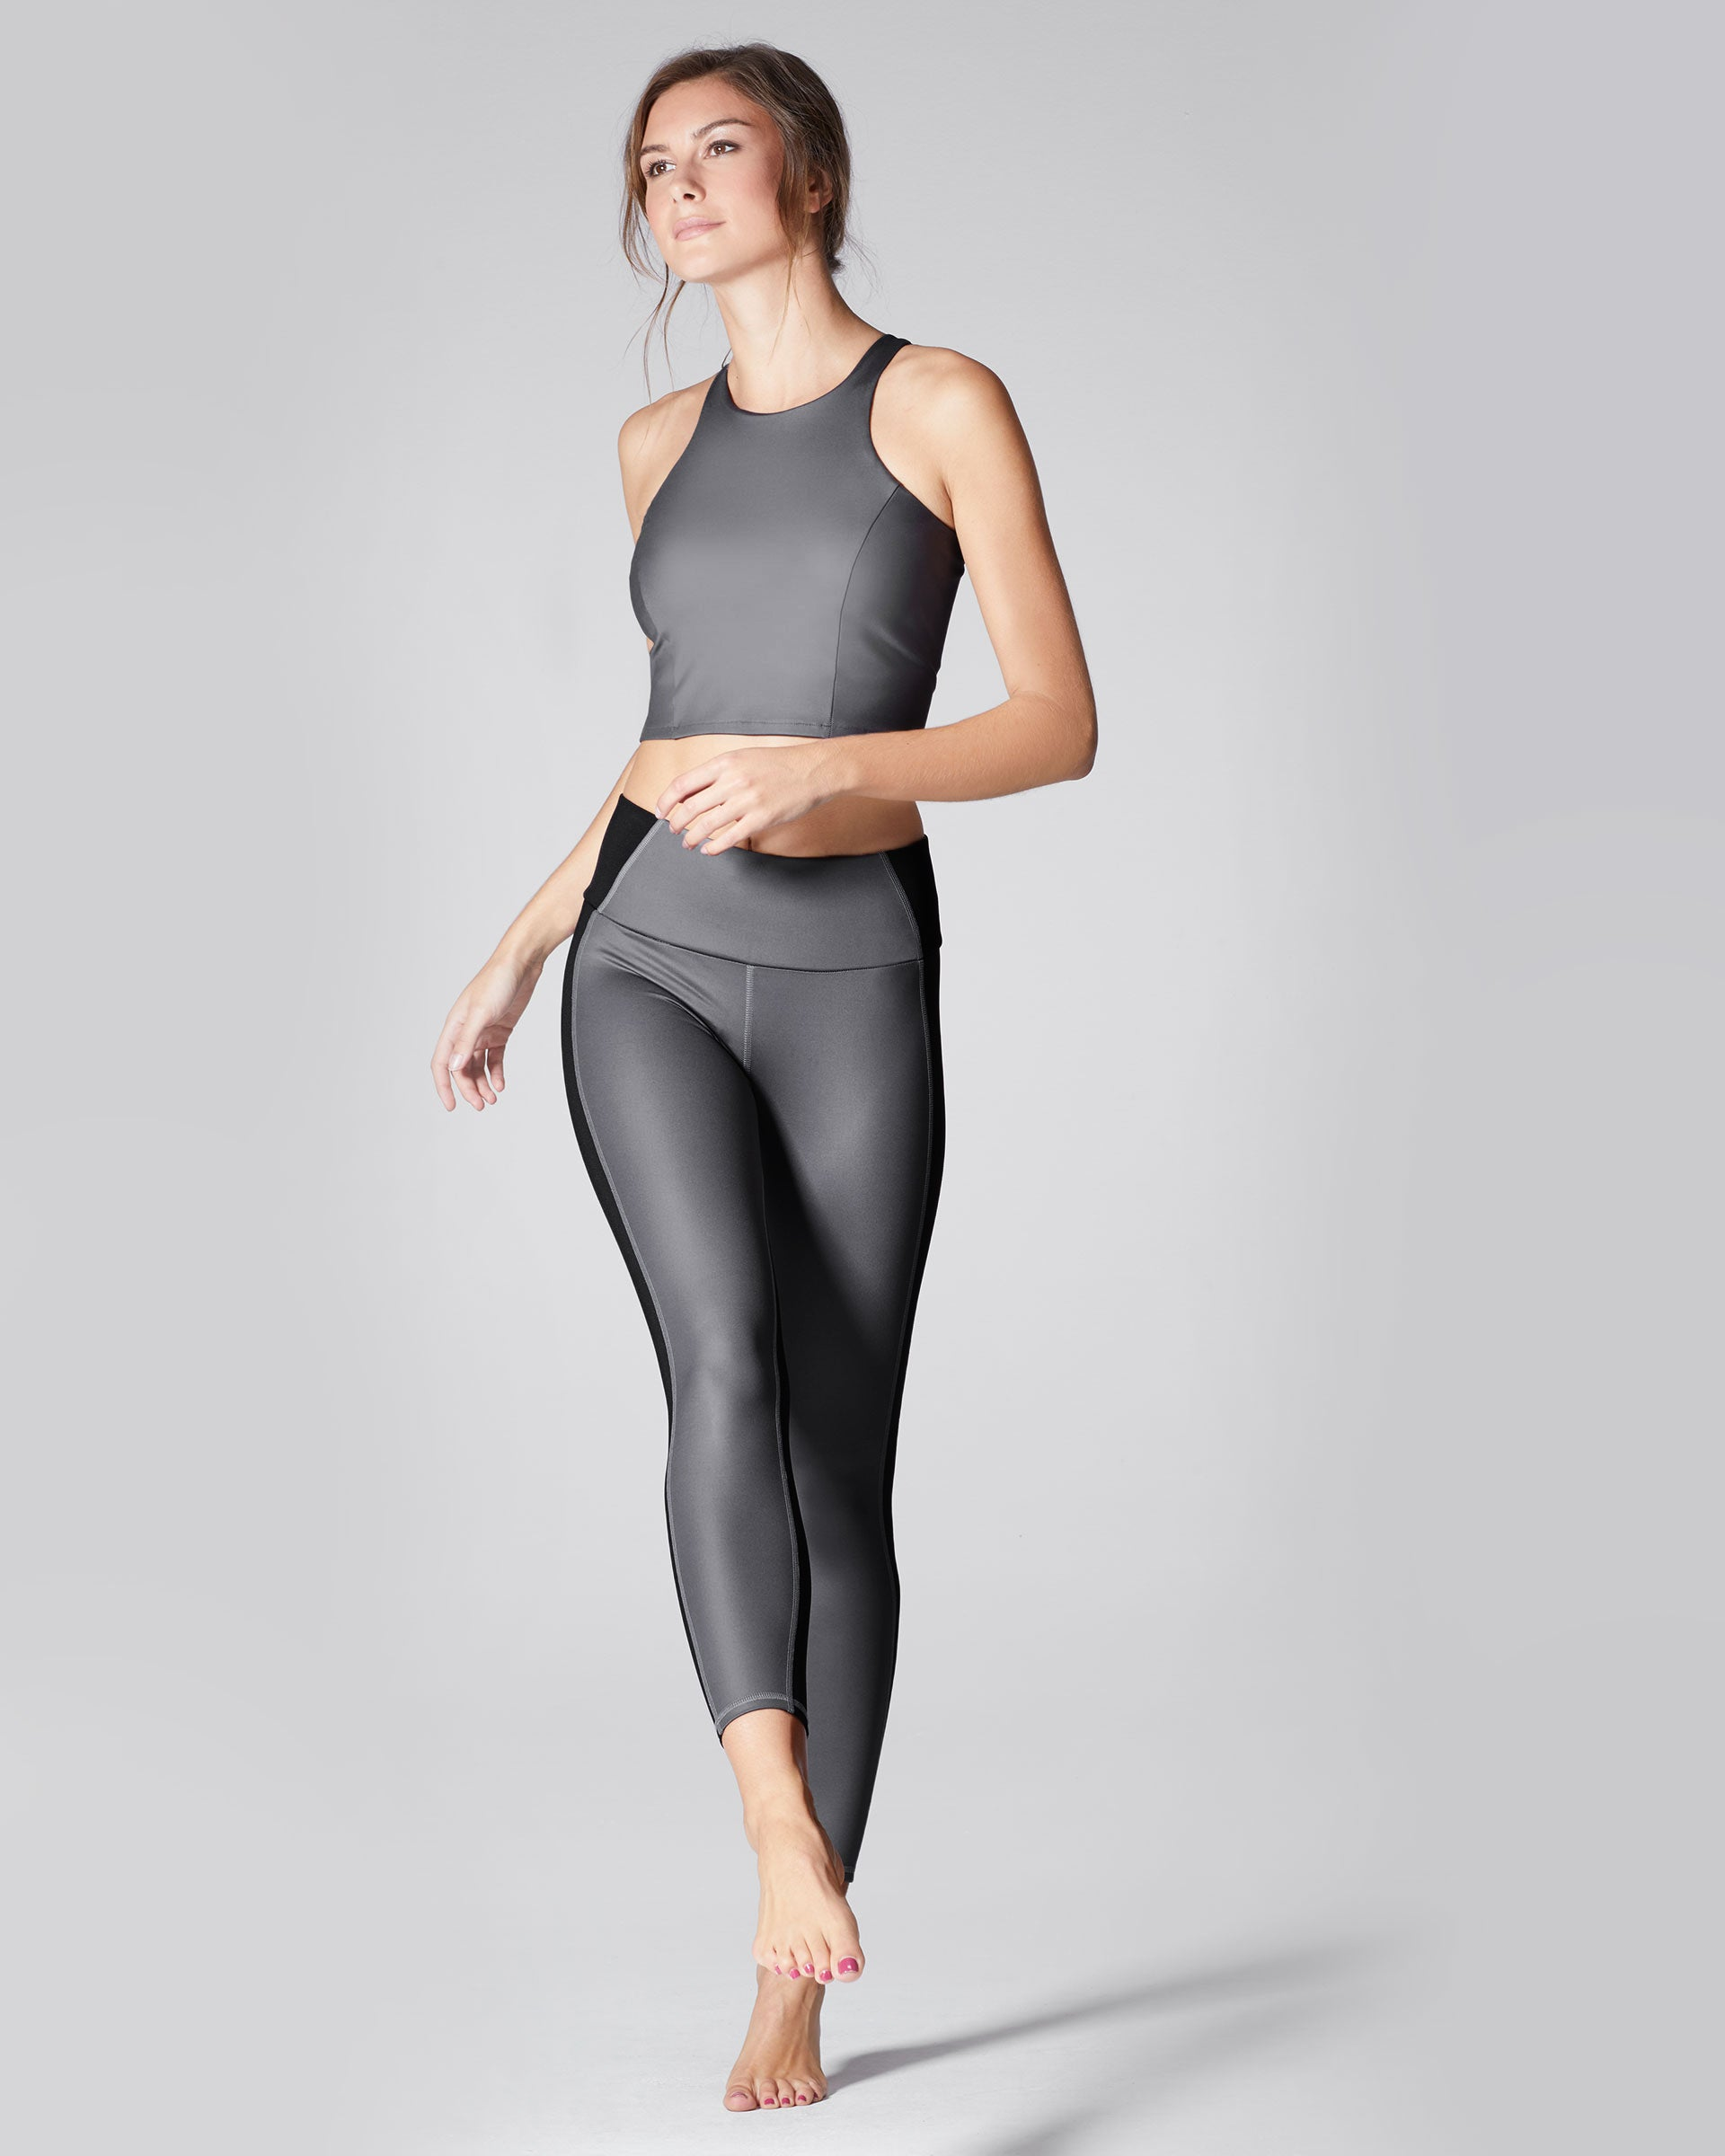 vibe-crop-top-gunmetal